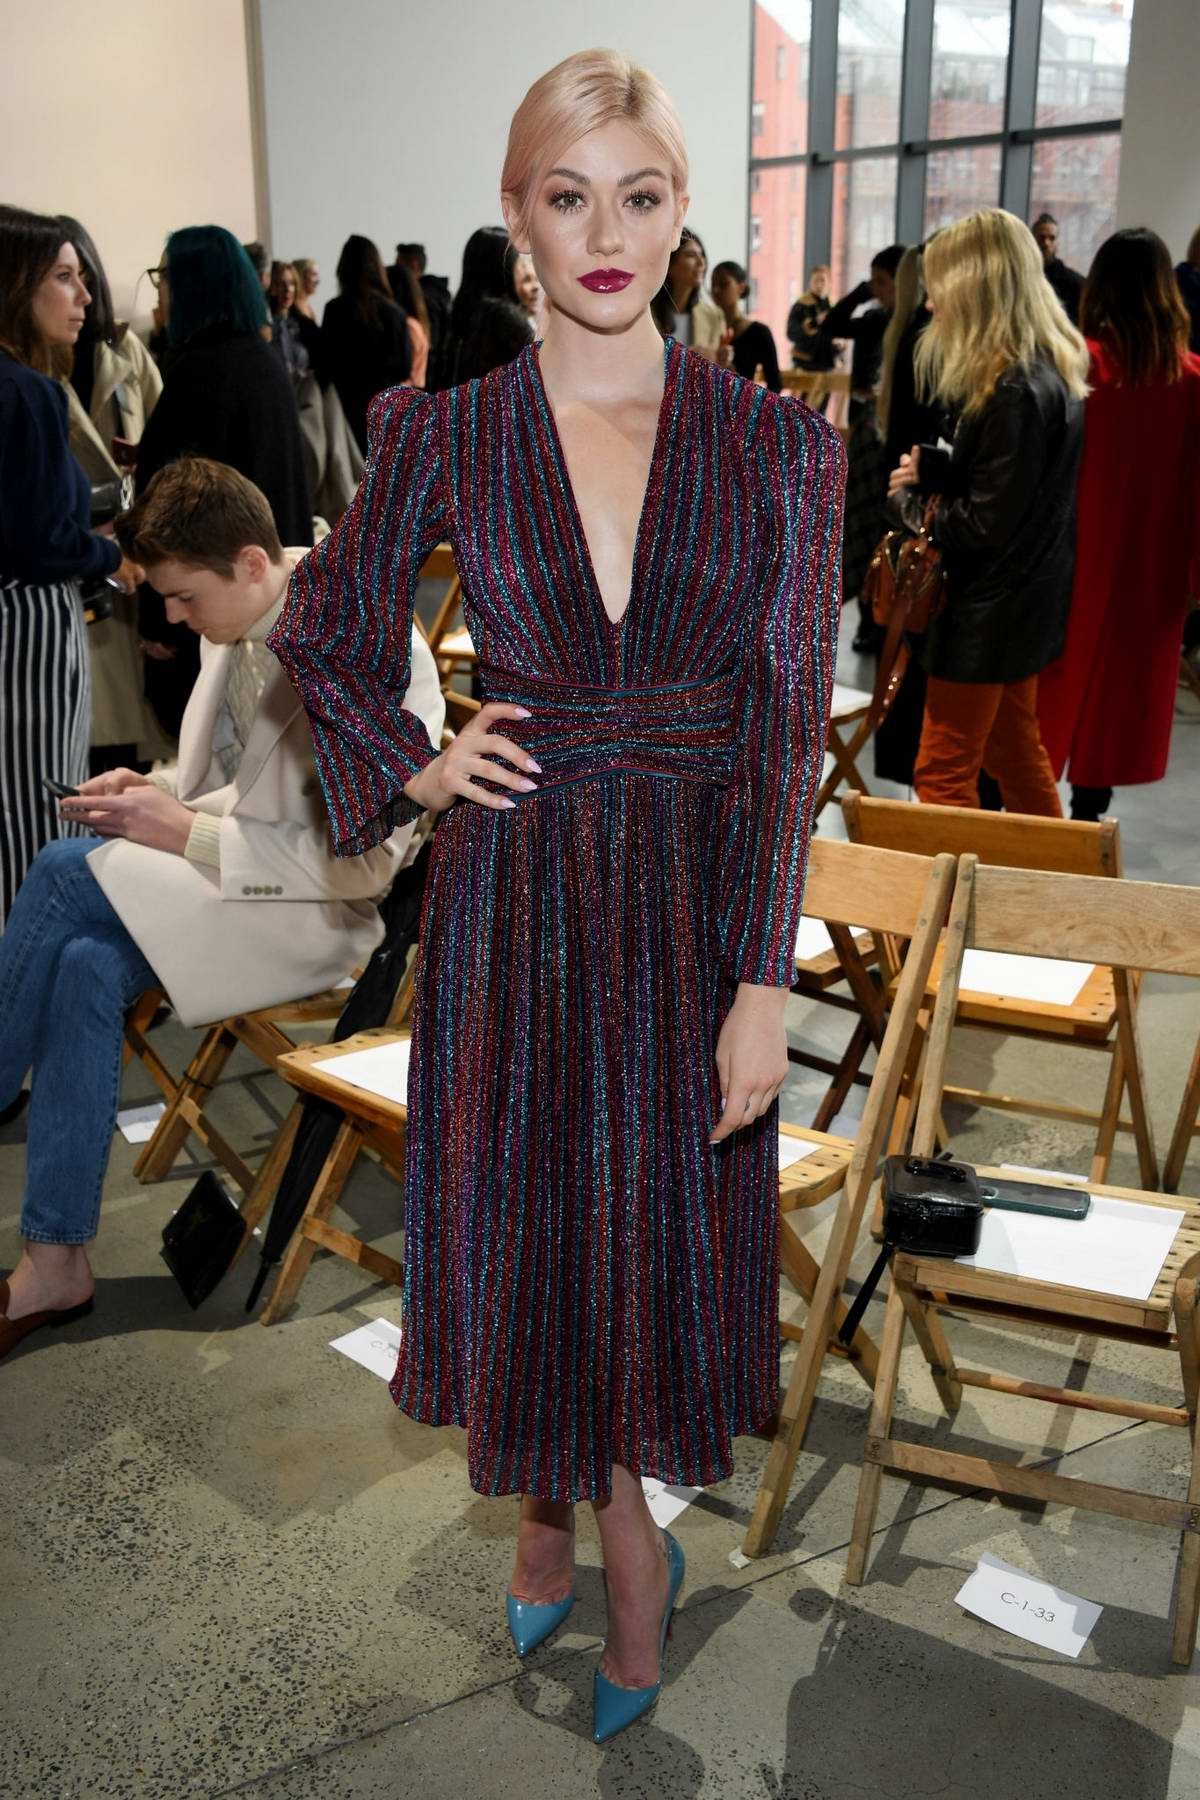 Katherine McNamara attends the Jonathan Simkhai Fashion Show during NYFW 2020 in New York City